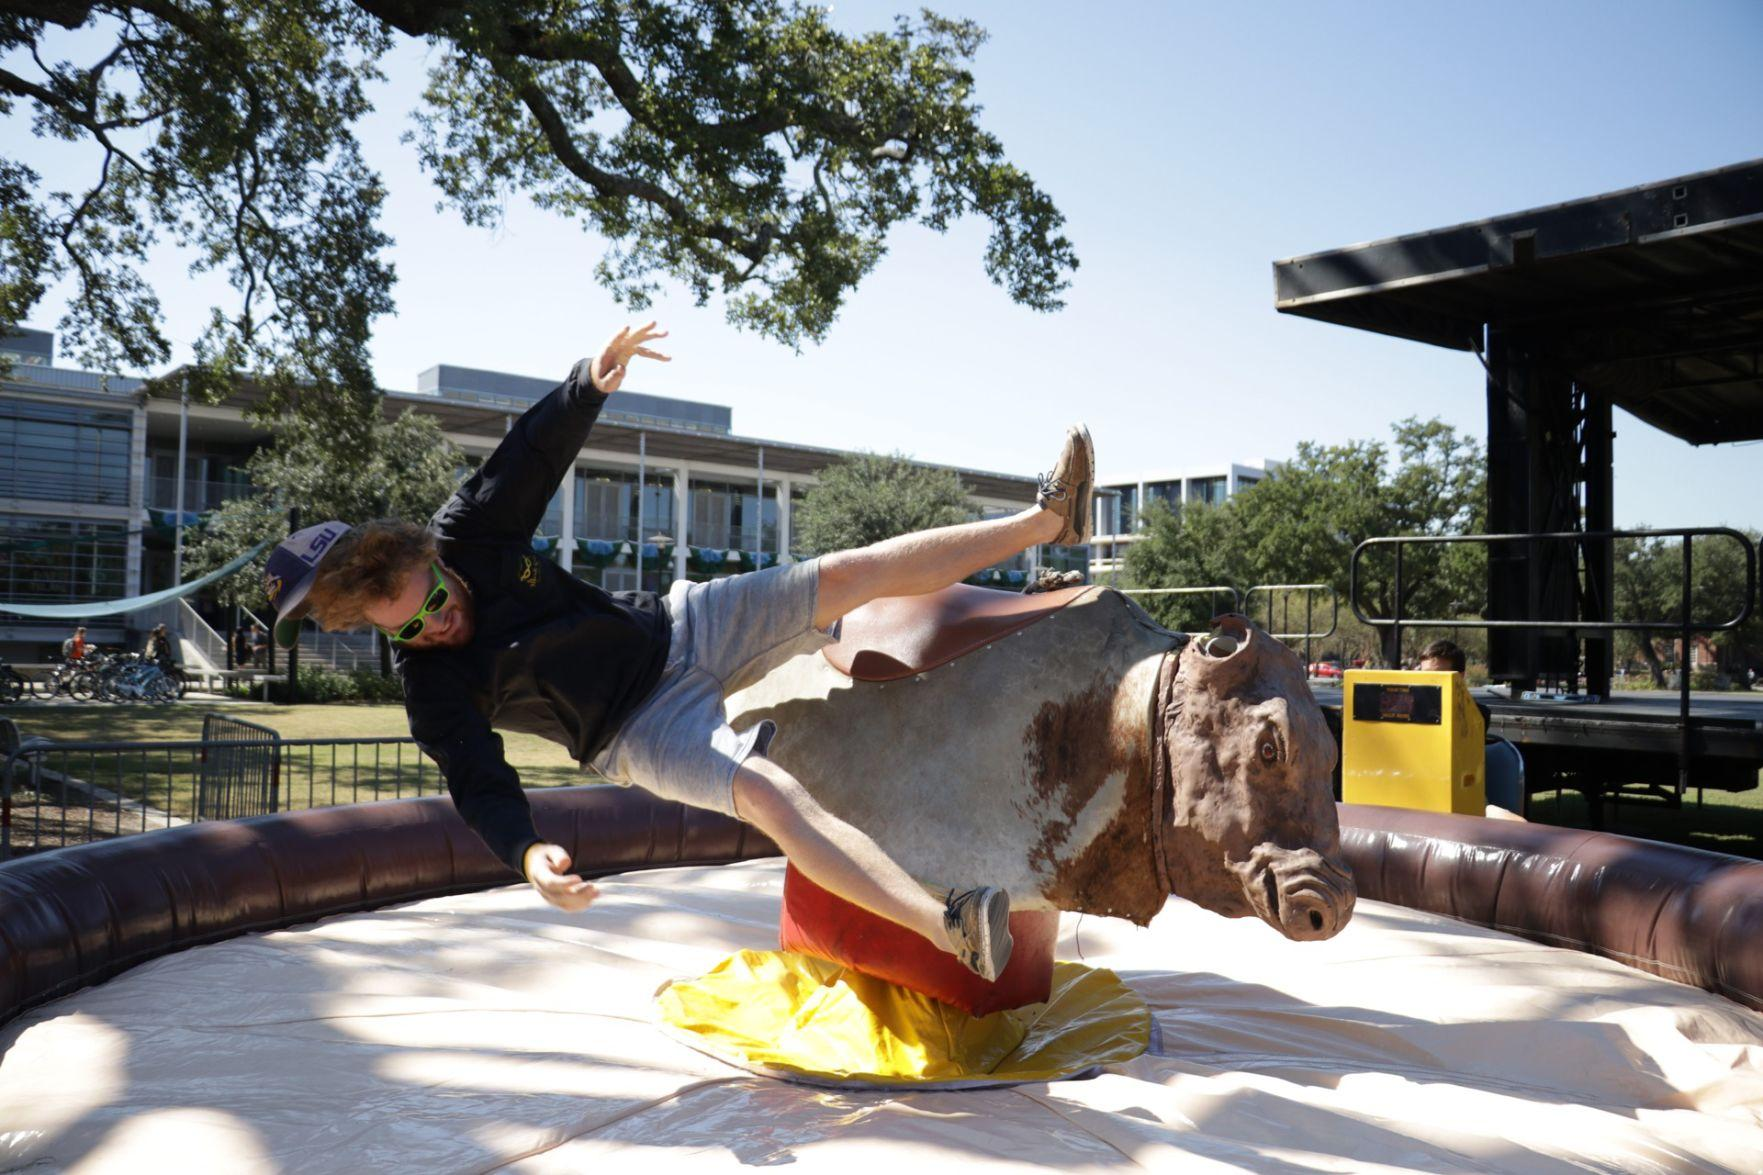 As part of the day's Homecoming festivities, Homecoming King nominee Bobby Martin rides a mechanical bull Oct. 27 on the Lavin-Bernick Center Quadrangle. Other festivities for the afternoon included making emoji pillows and creating personalized signs.